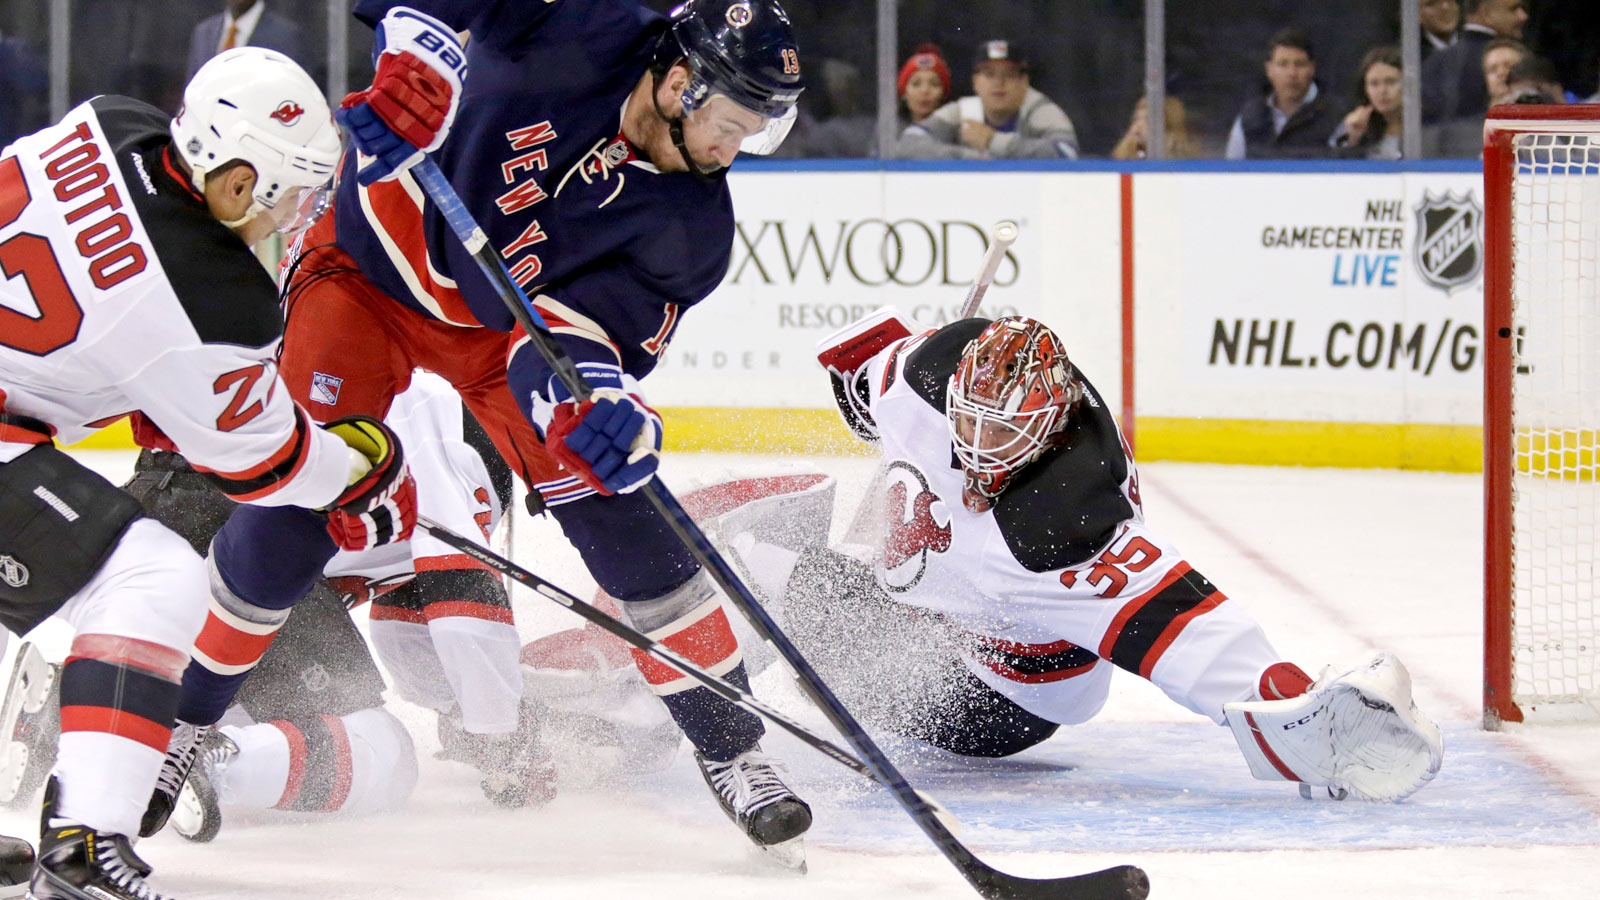 Devils win in overtime, hand Rangers third straight loss